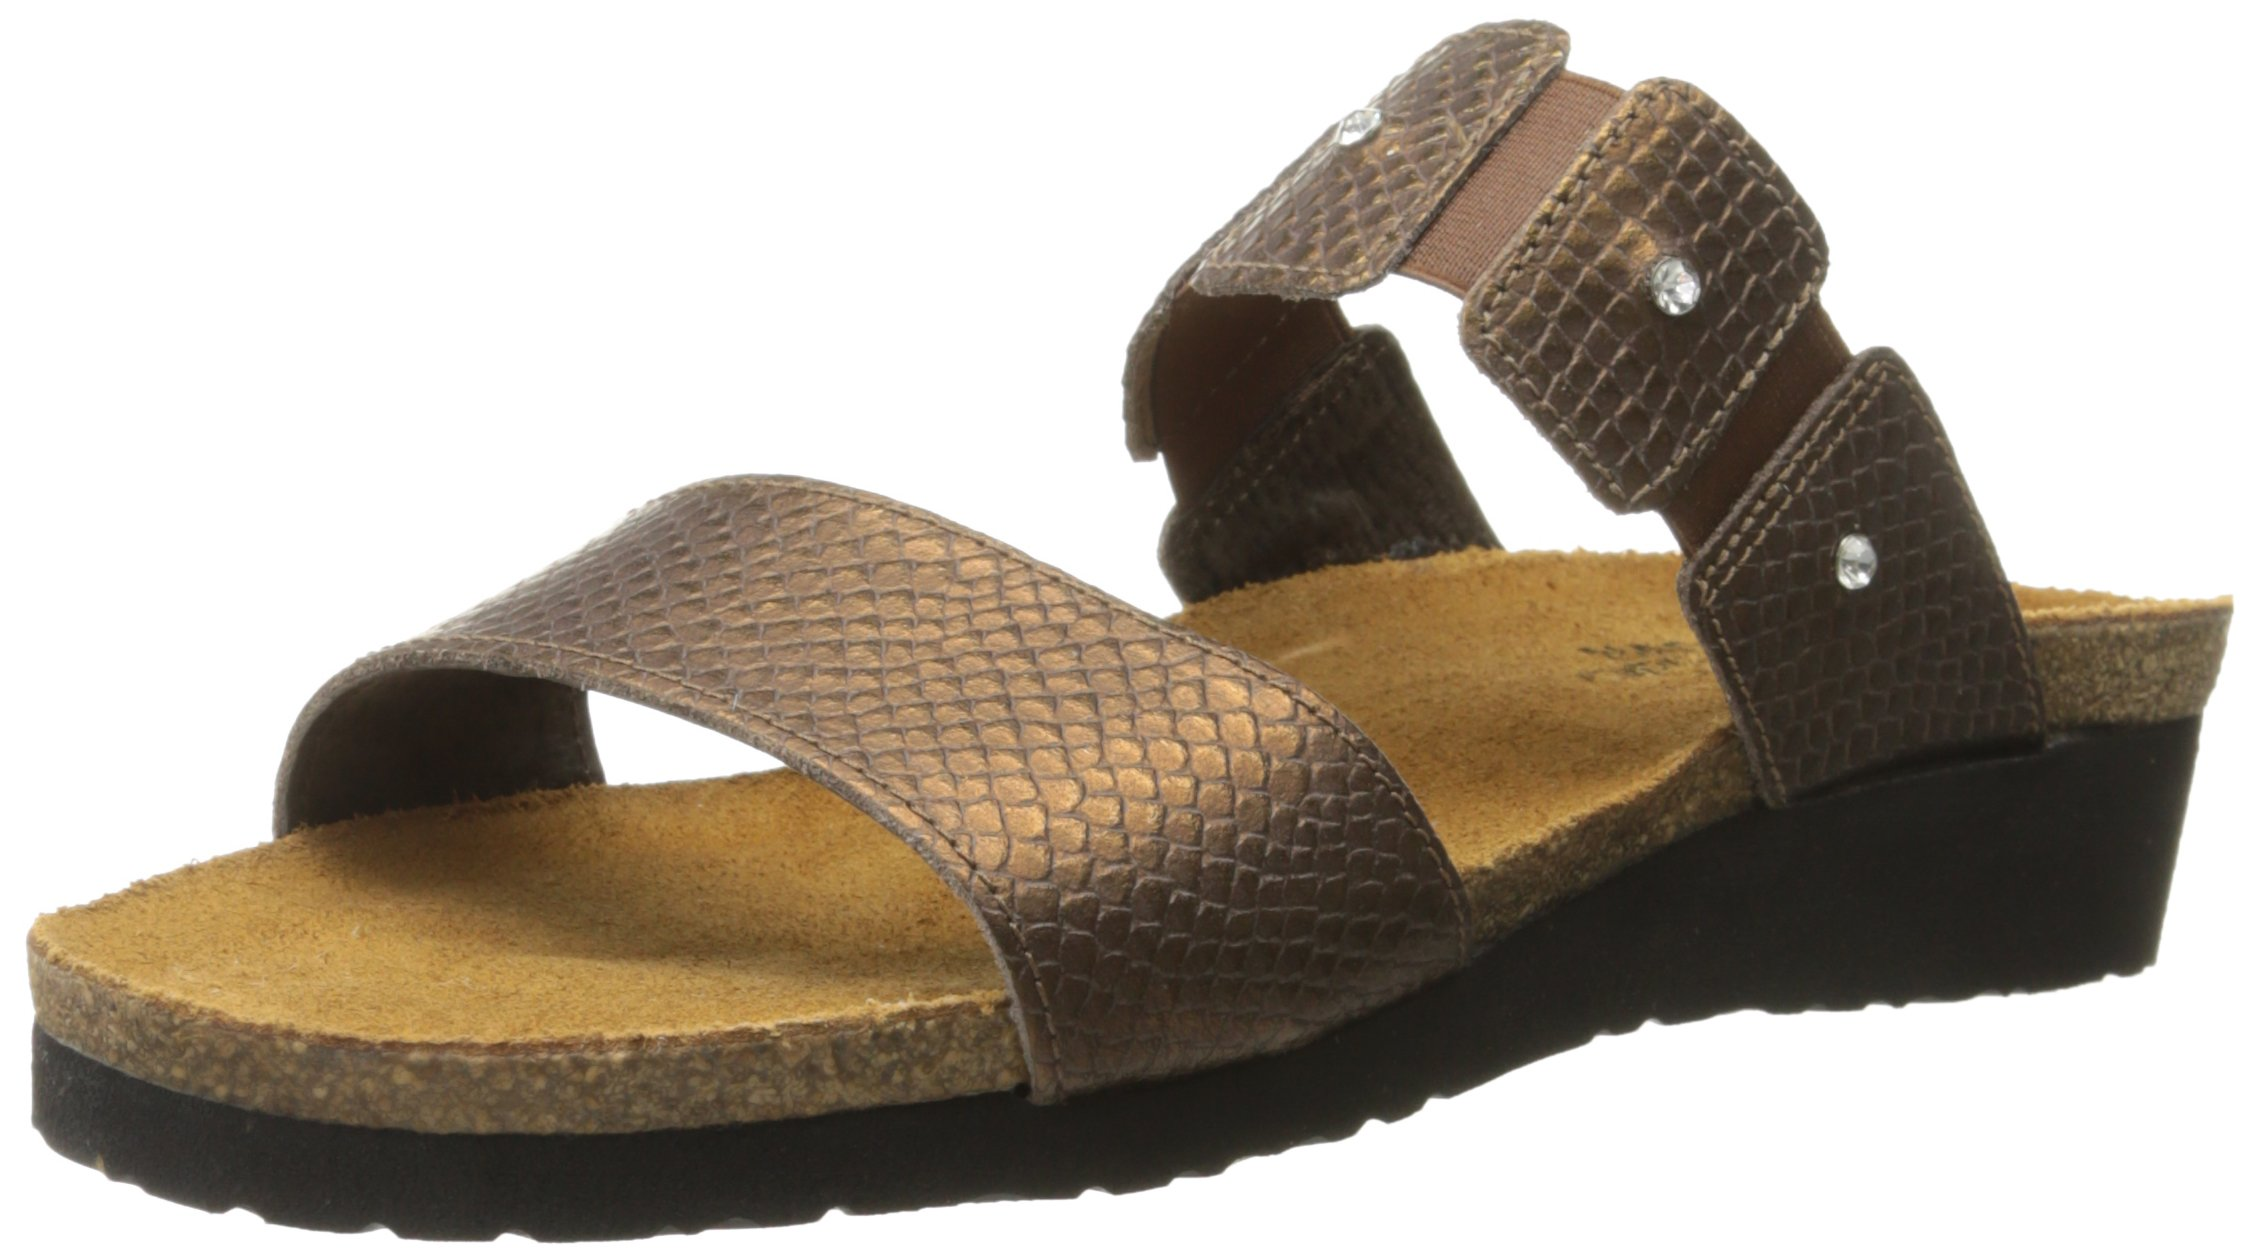 Naot Women's Ashley Wedge Sandal, Brown Lizard, 42 EU/10.5-11 M US